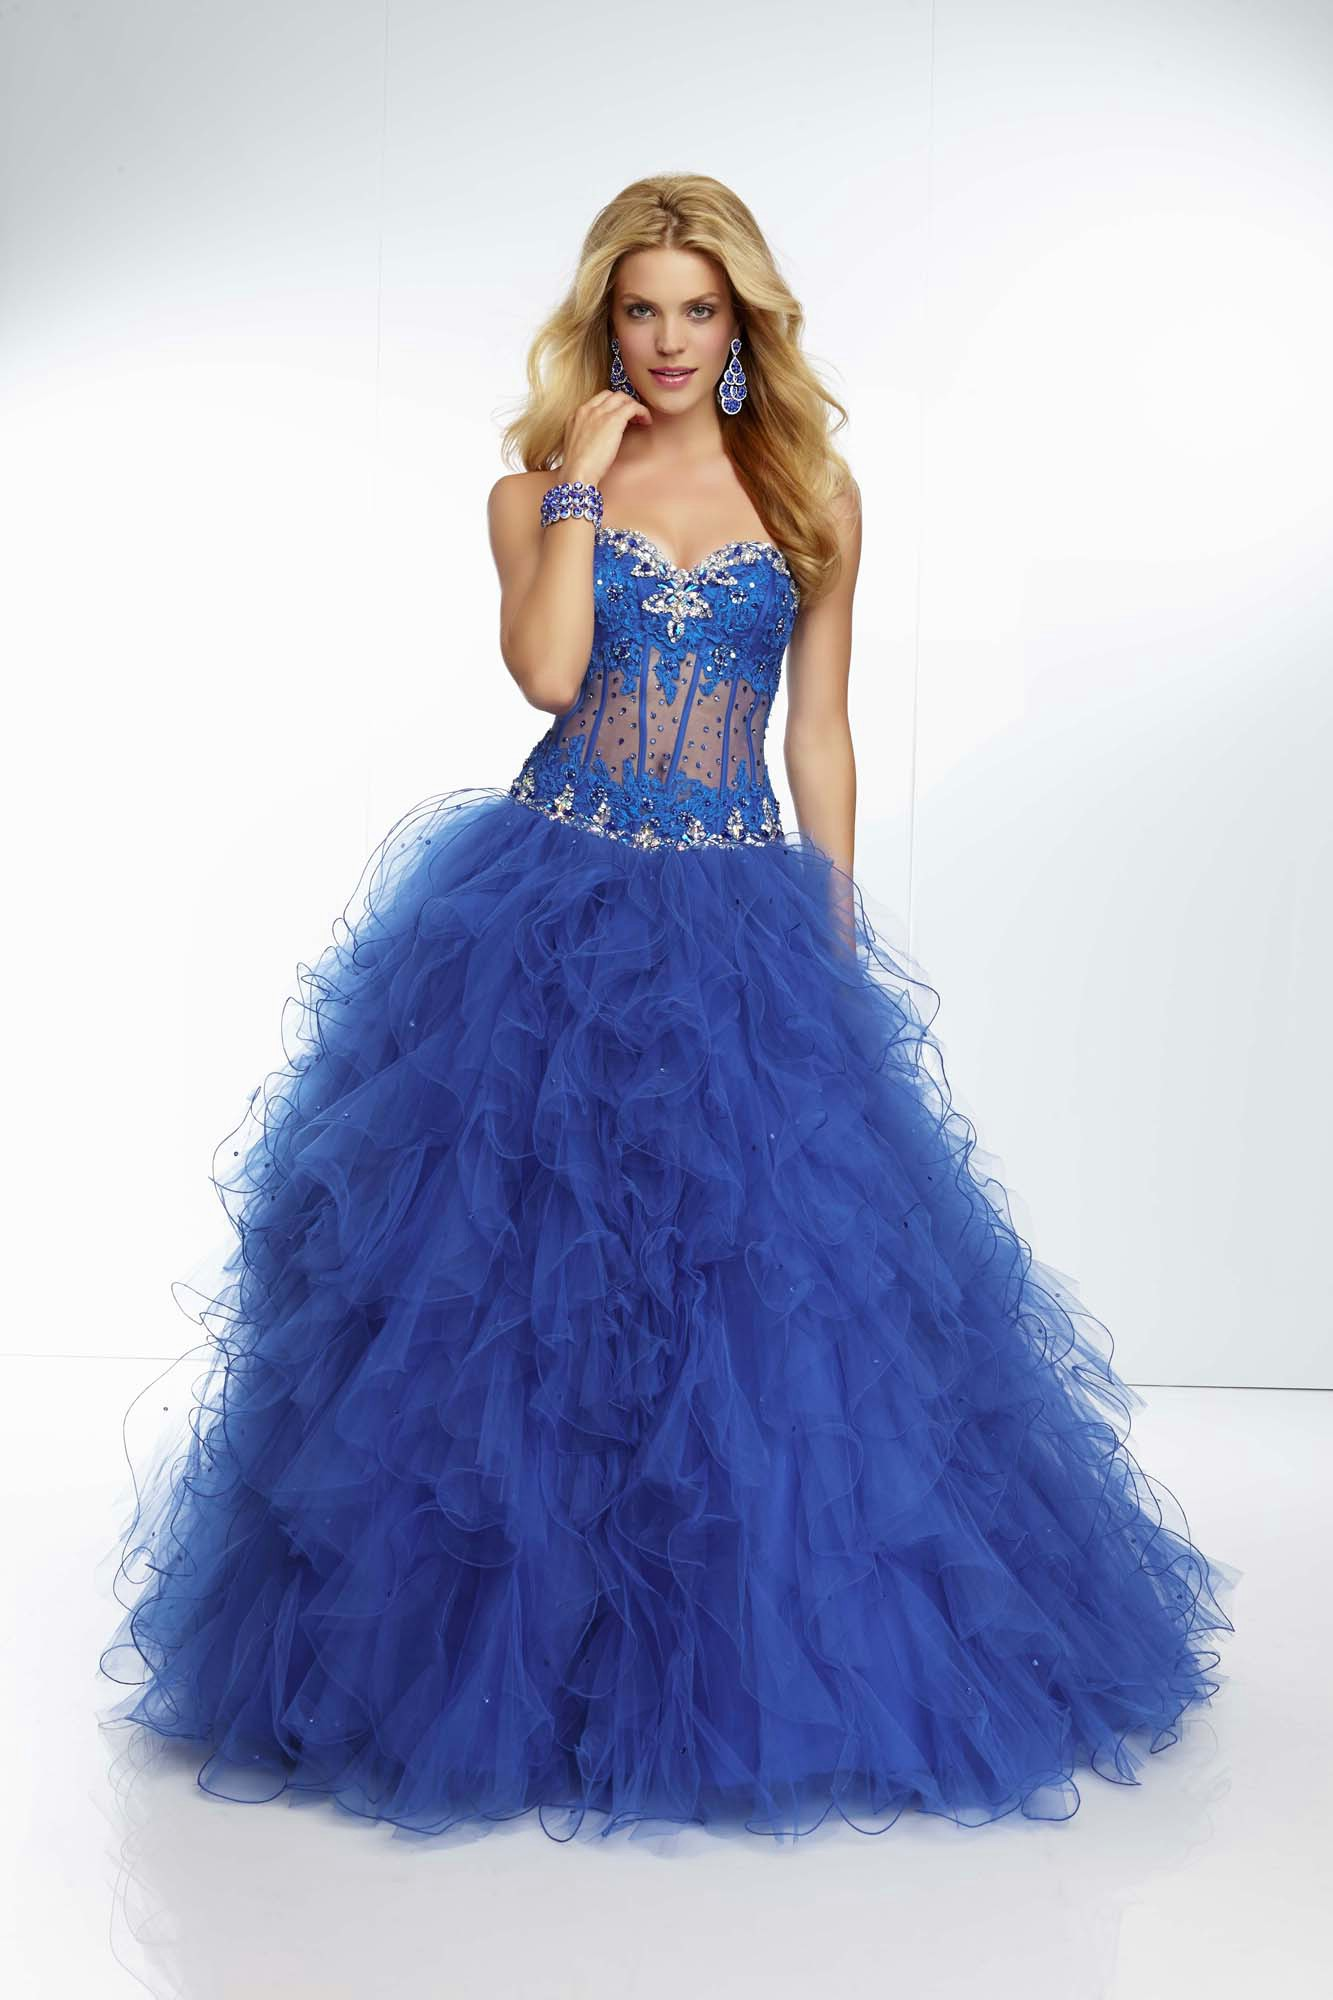 sweet mermaid prom dress